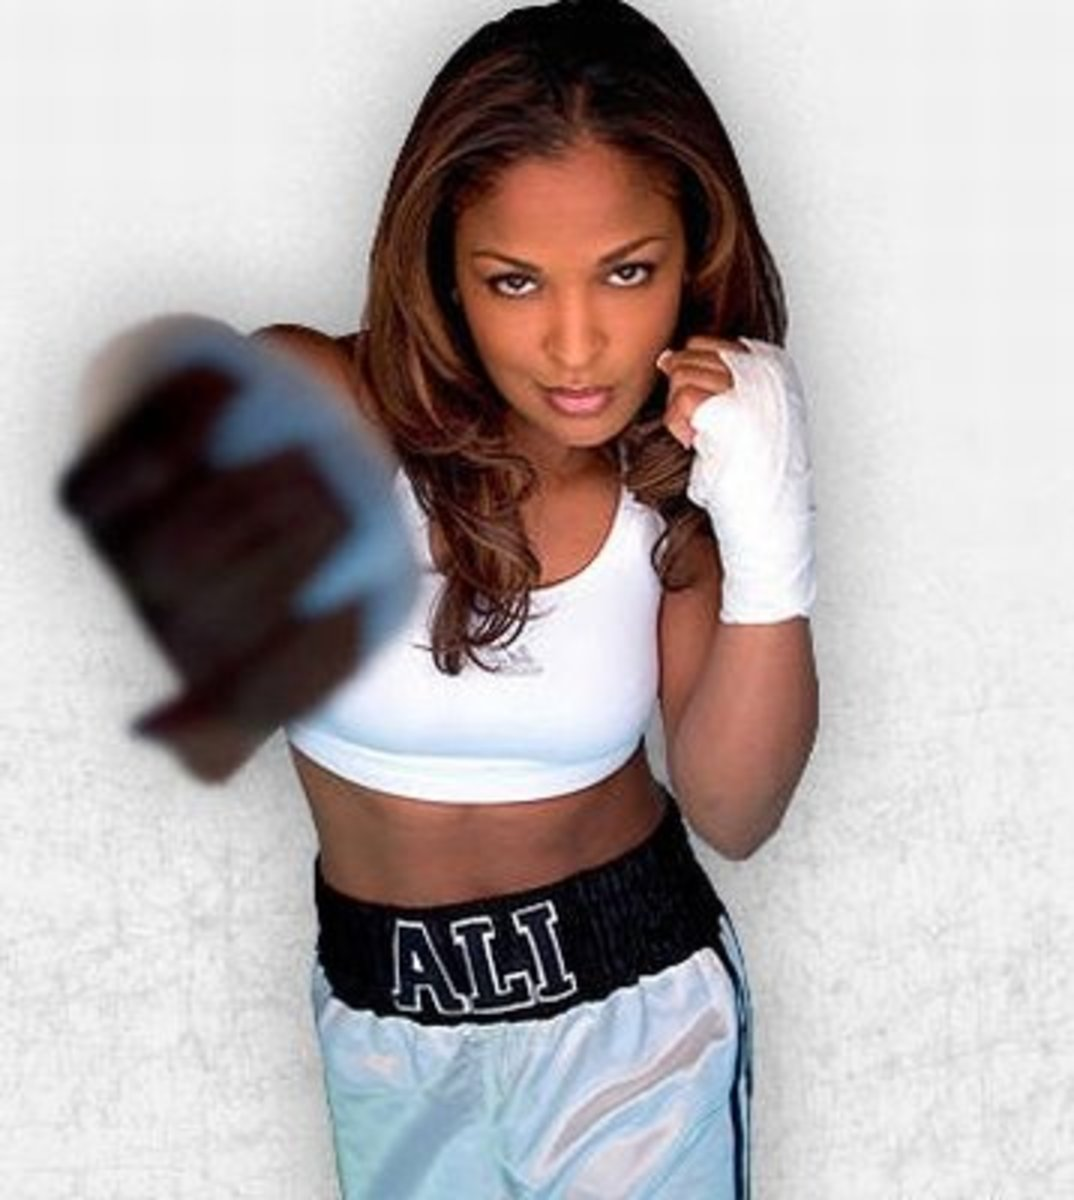 The Hottest Female Boxers